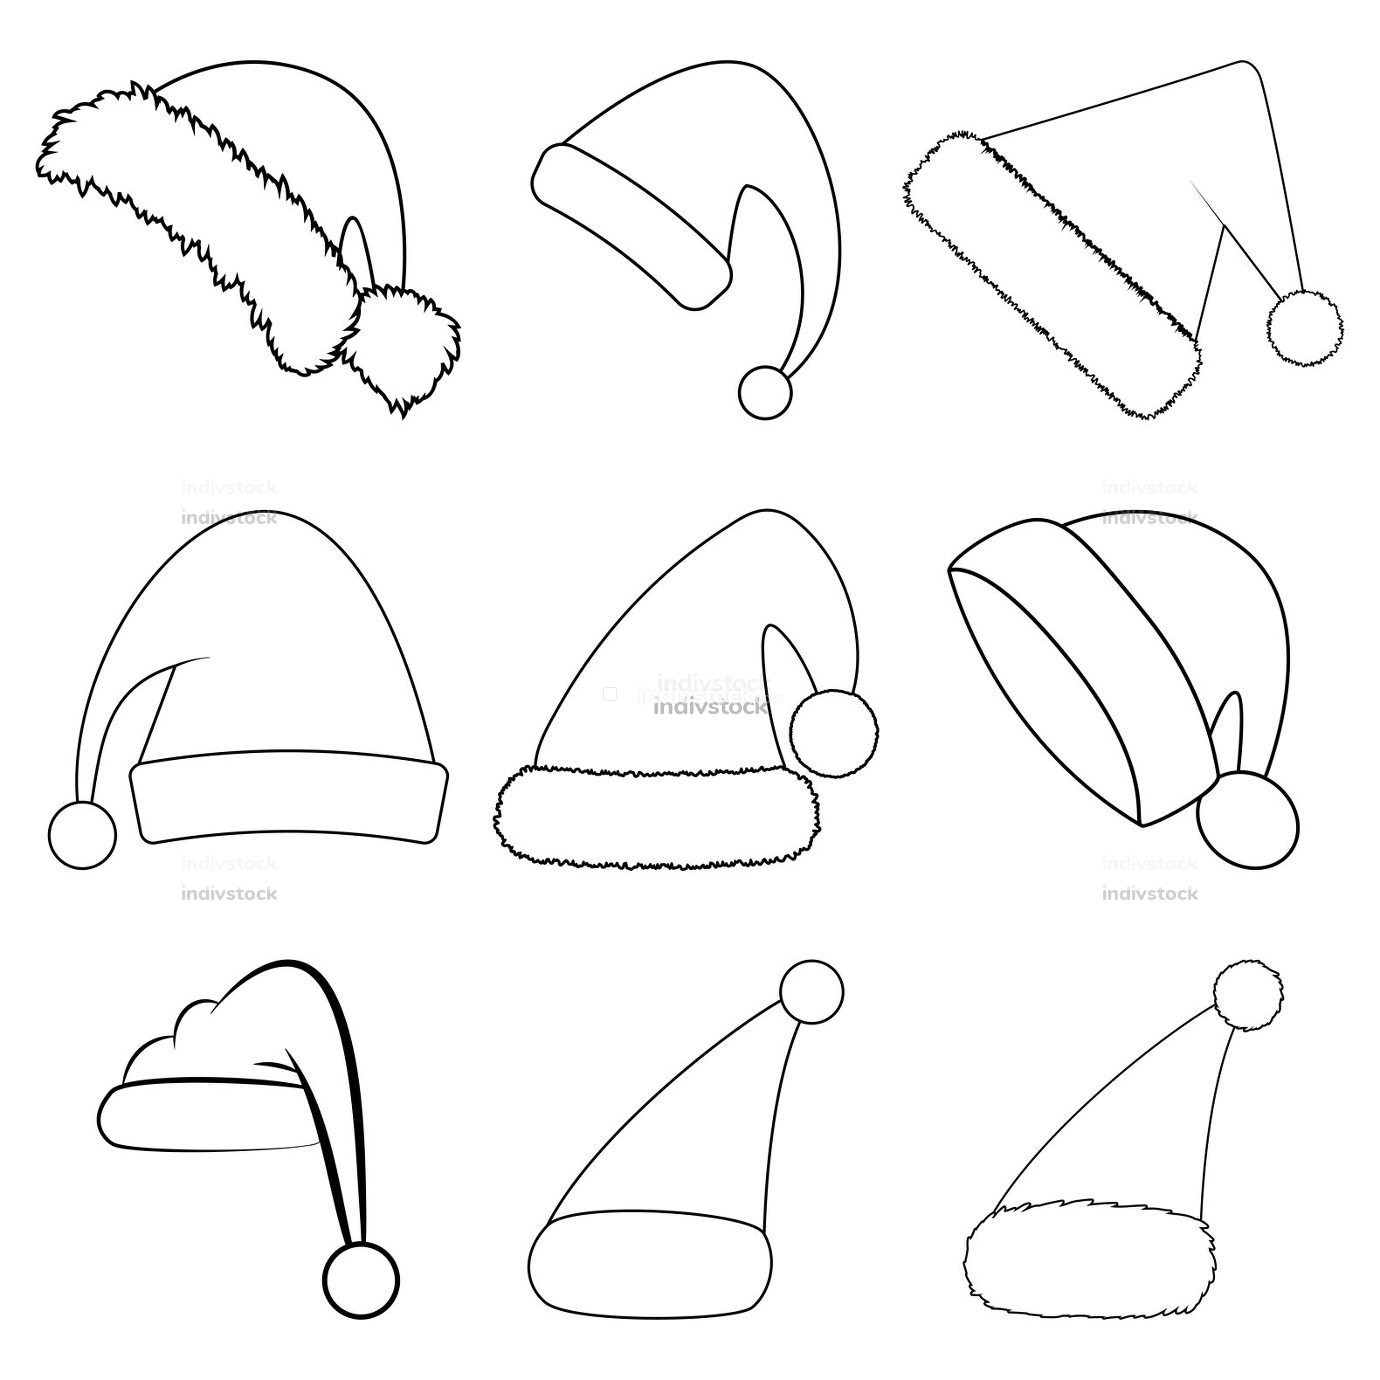 Santa christmas hat outline set. Contour shape collection of santa claus hat. Santa cap icon group isolated on white background. Winter simple symbols. Vector drawing for holiday design.